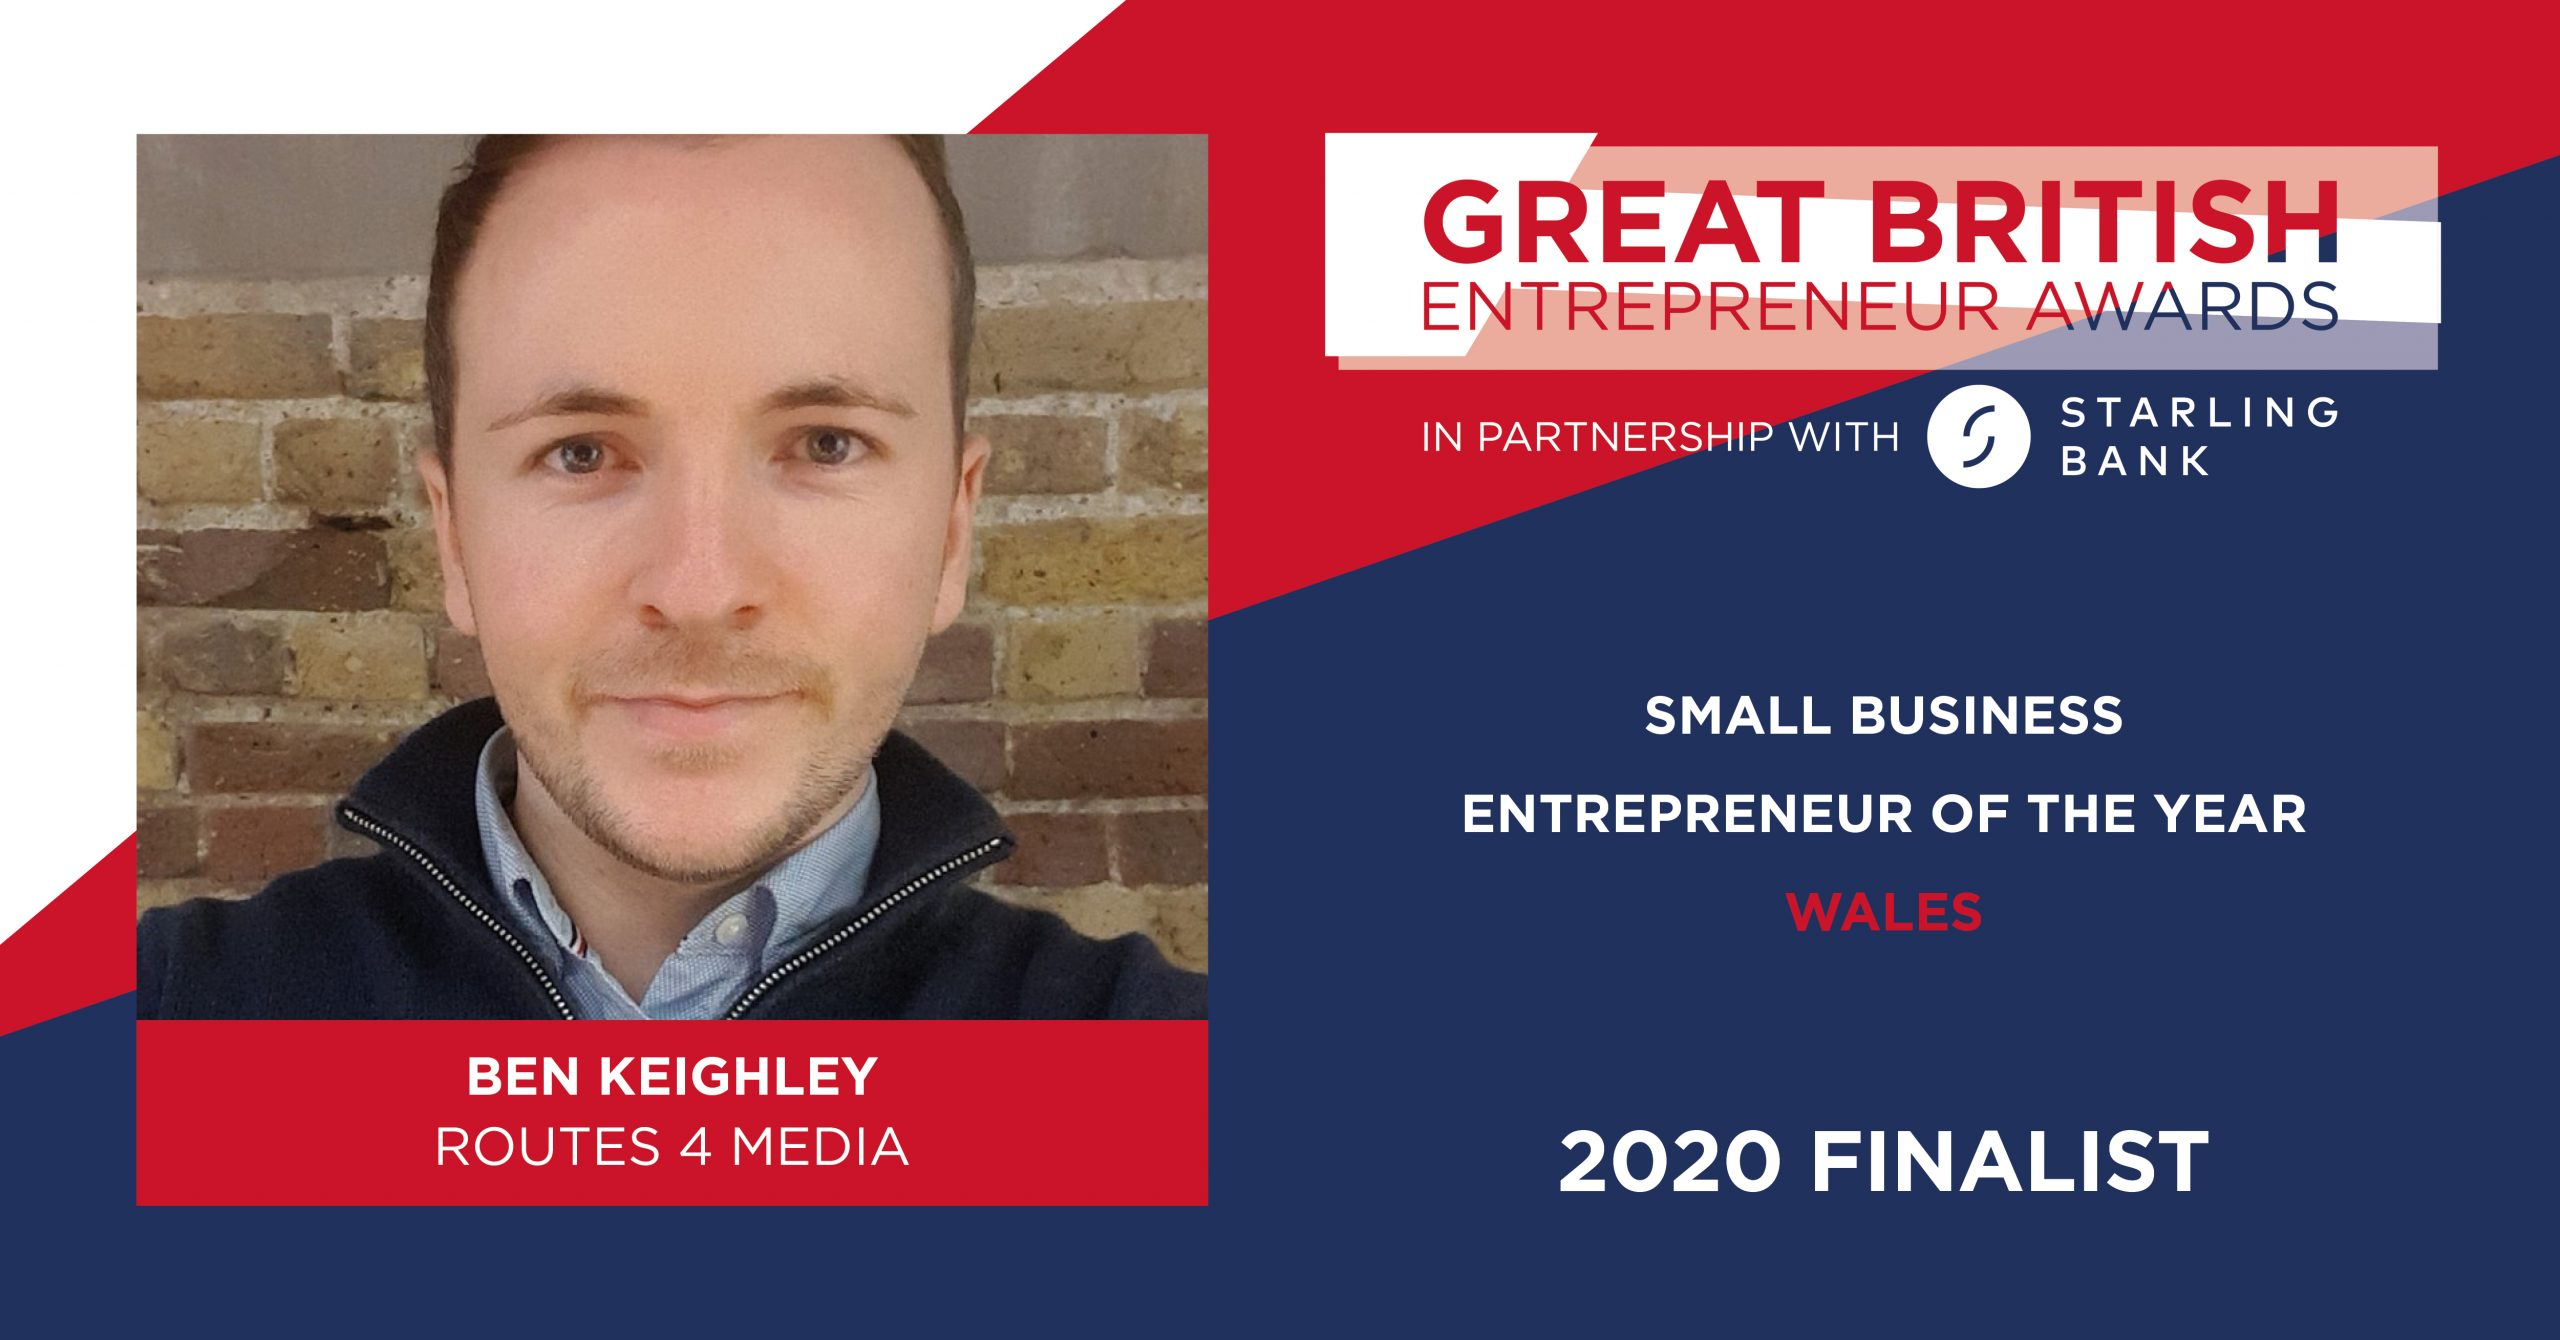 Cardiff-Based Entrepreneur Ben Keighley Shortlisted As 'Great British Entrepreneur Awards 2020' Finalist